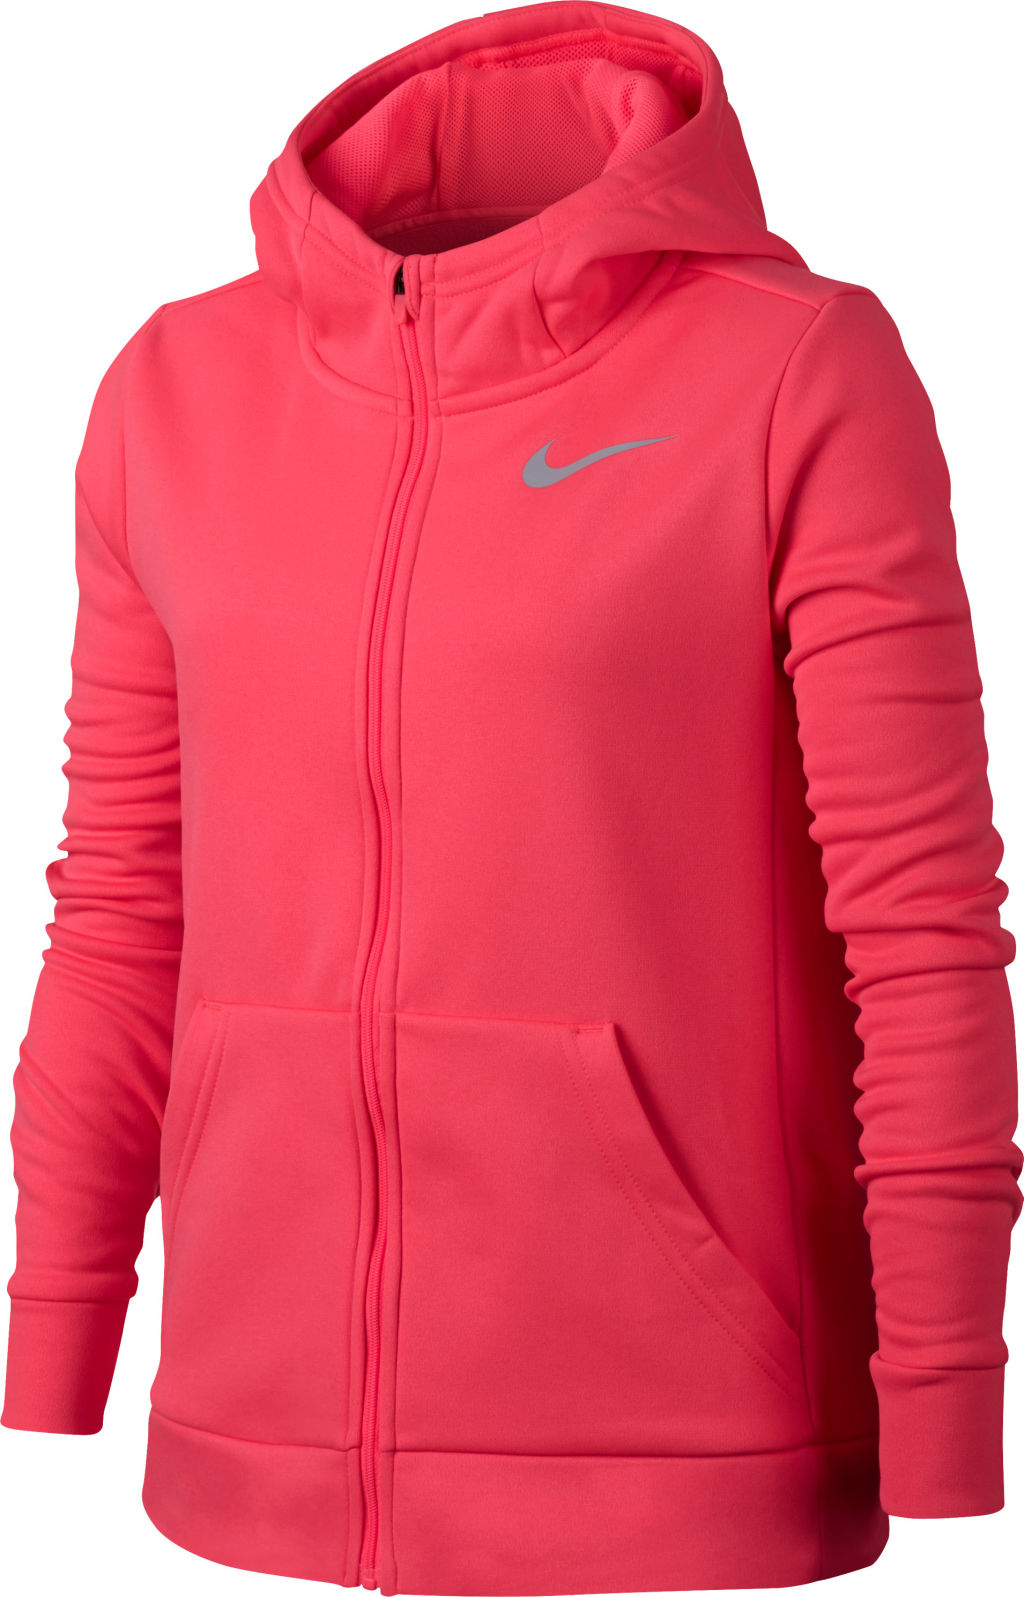 Nike Therma Training Hoodie Jr